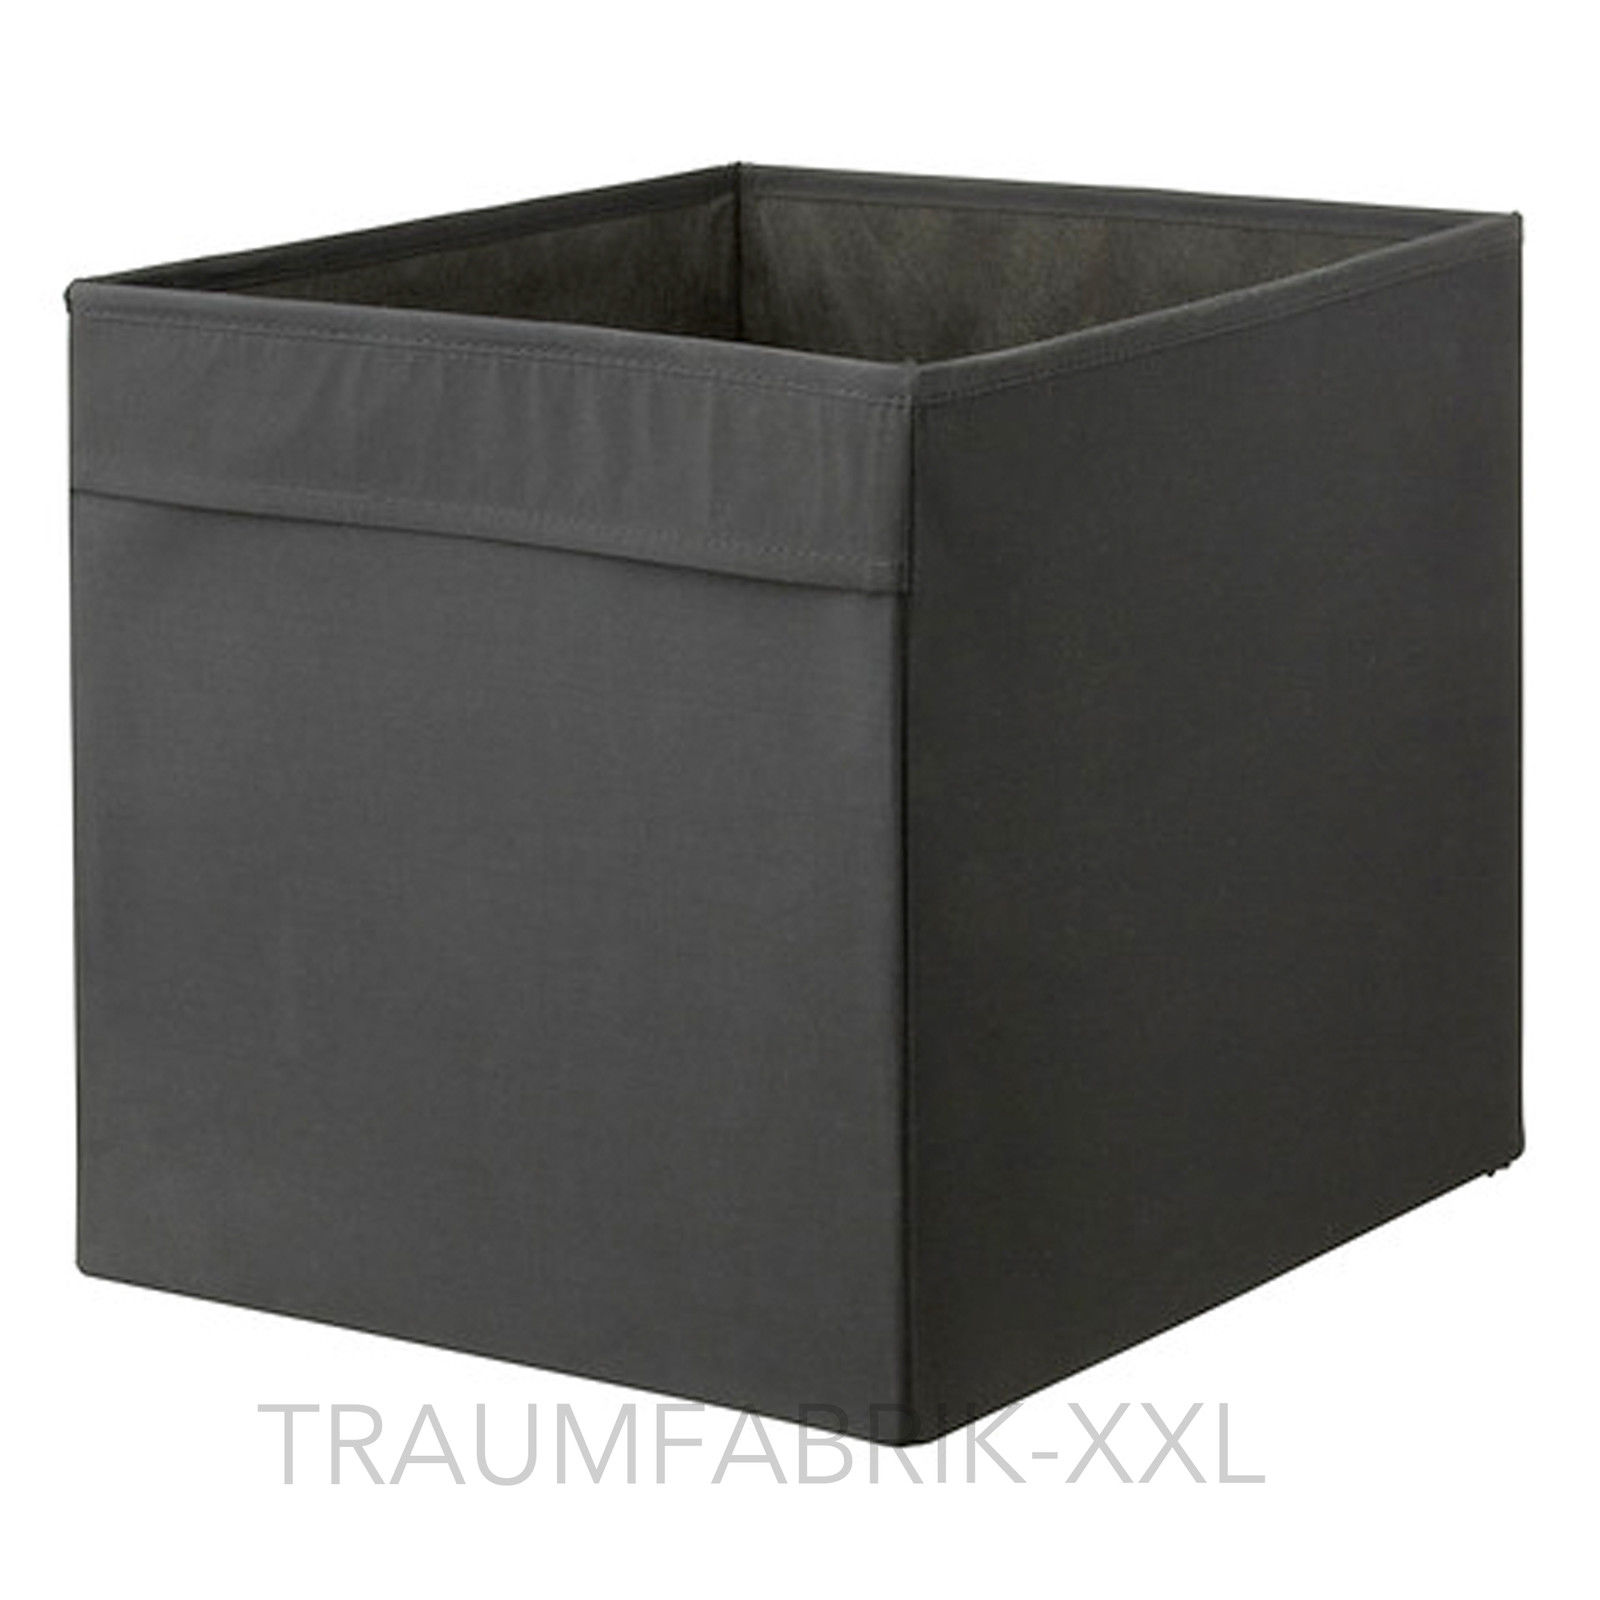 Ikea dr na fach box f r expedit kallax regal kiste for Ikea regal kallax schwarz